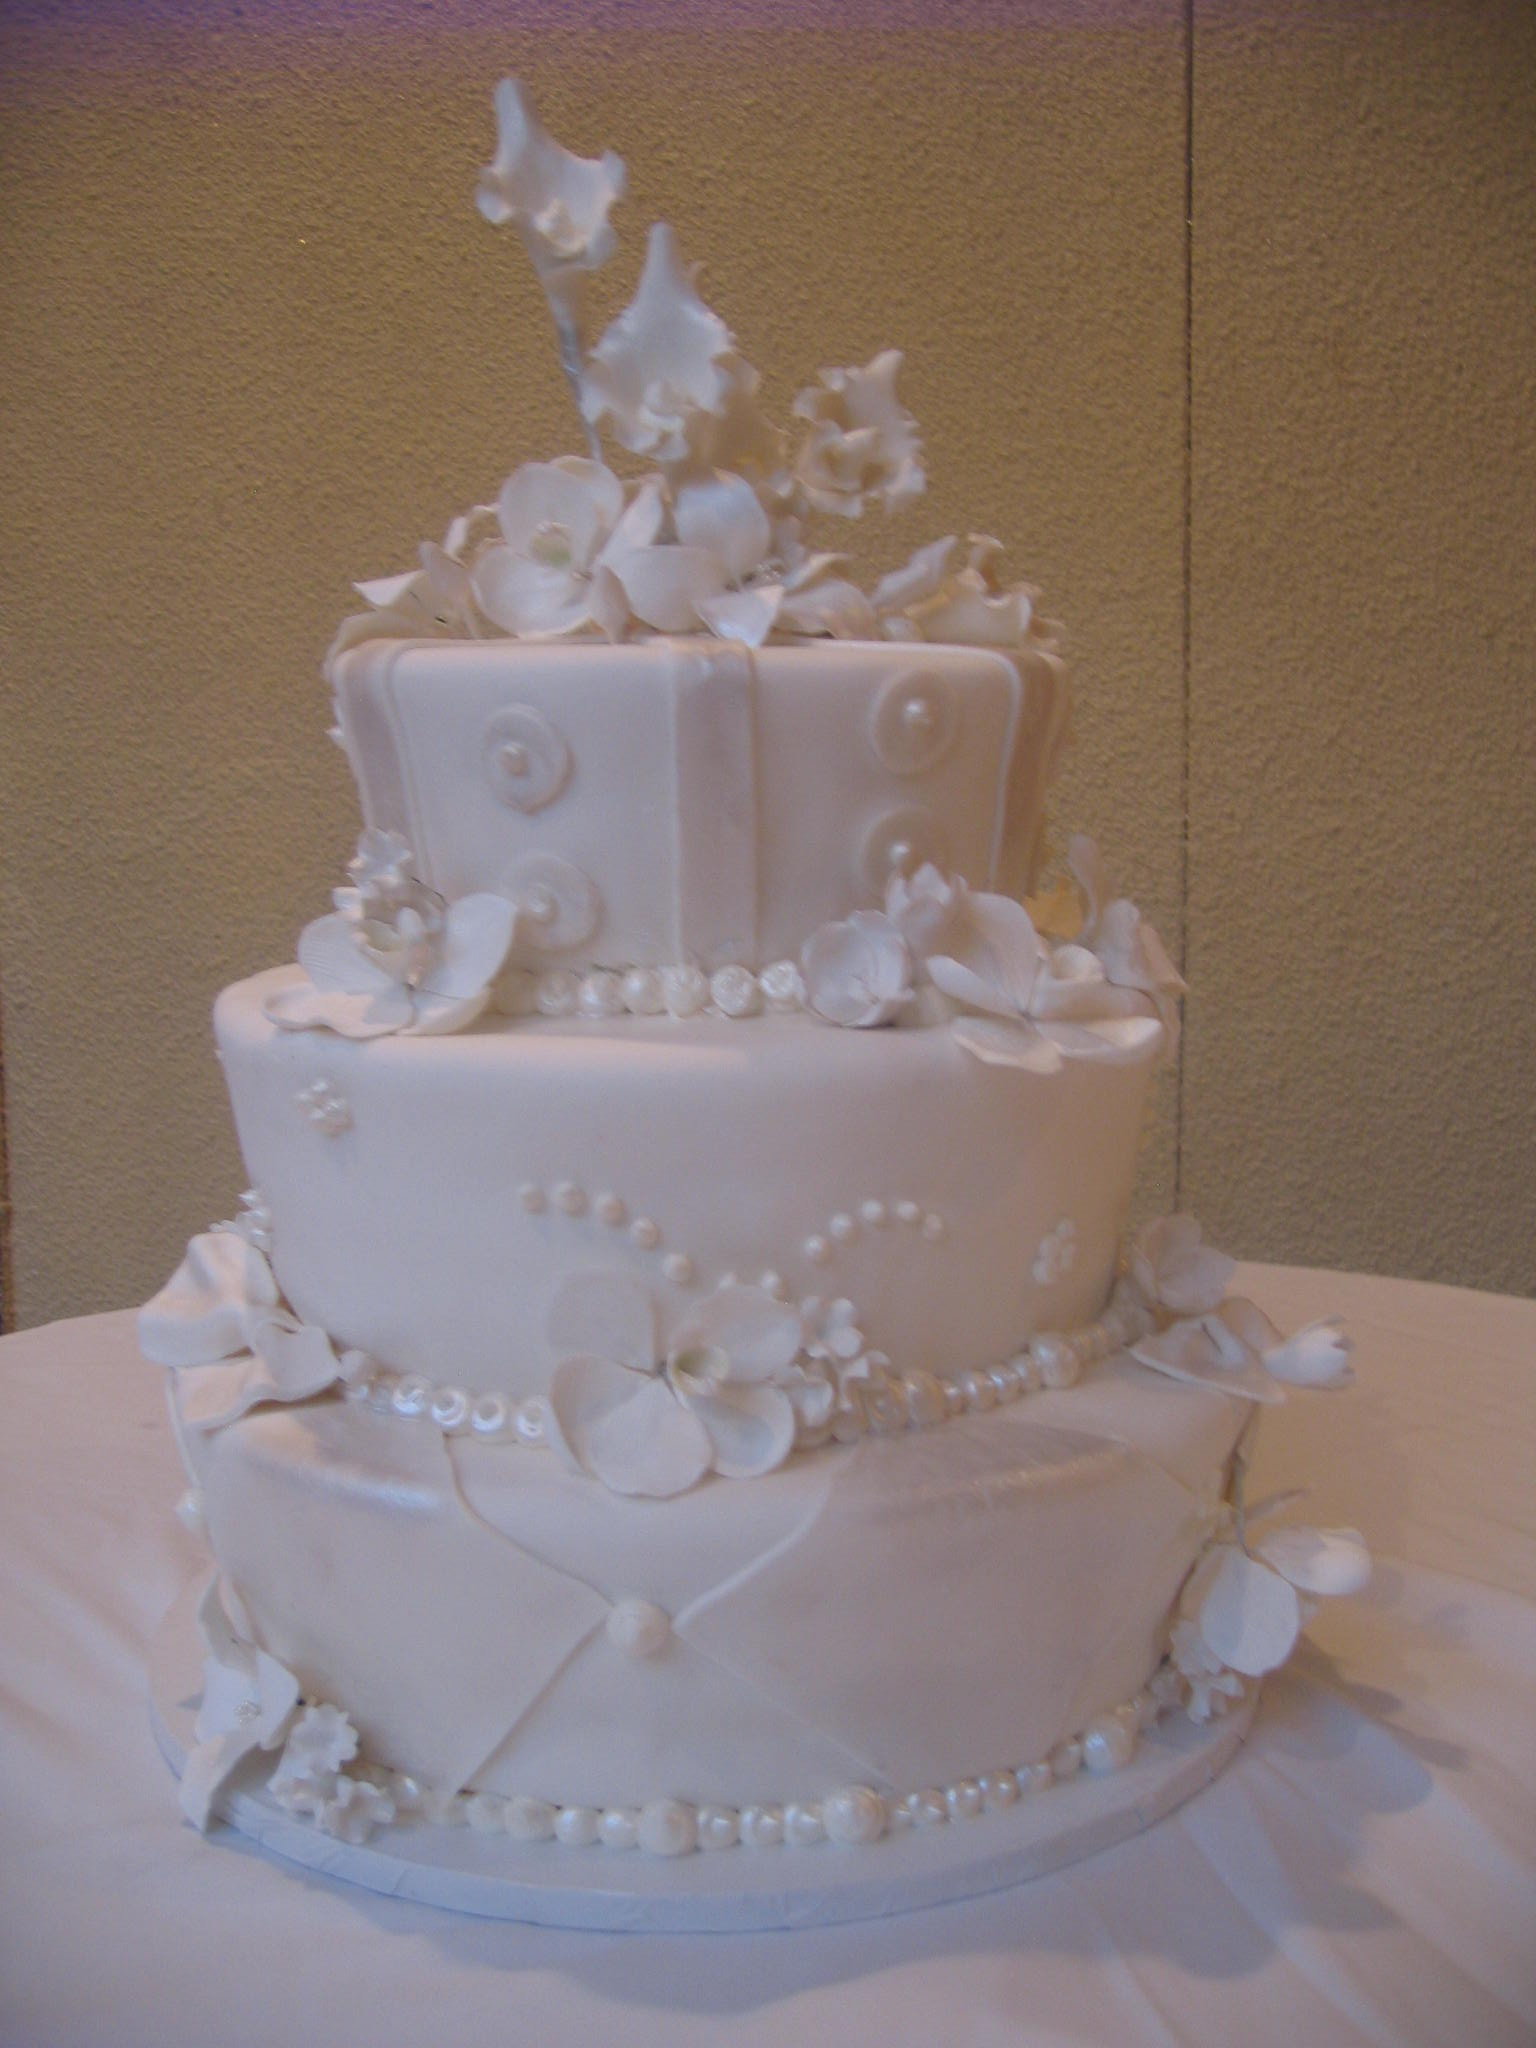 40 with Beveled Edges & Pearlized. Rolled Fondant Flowers